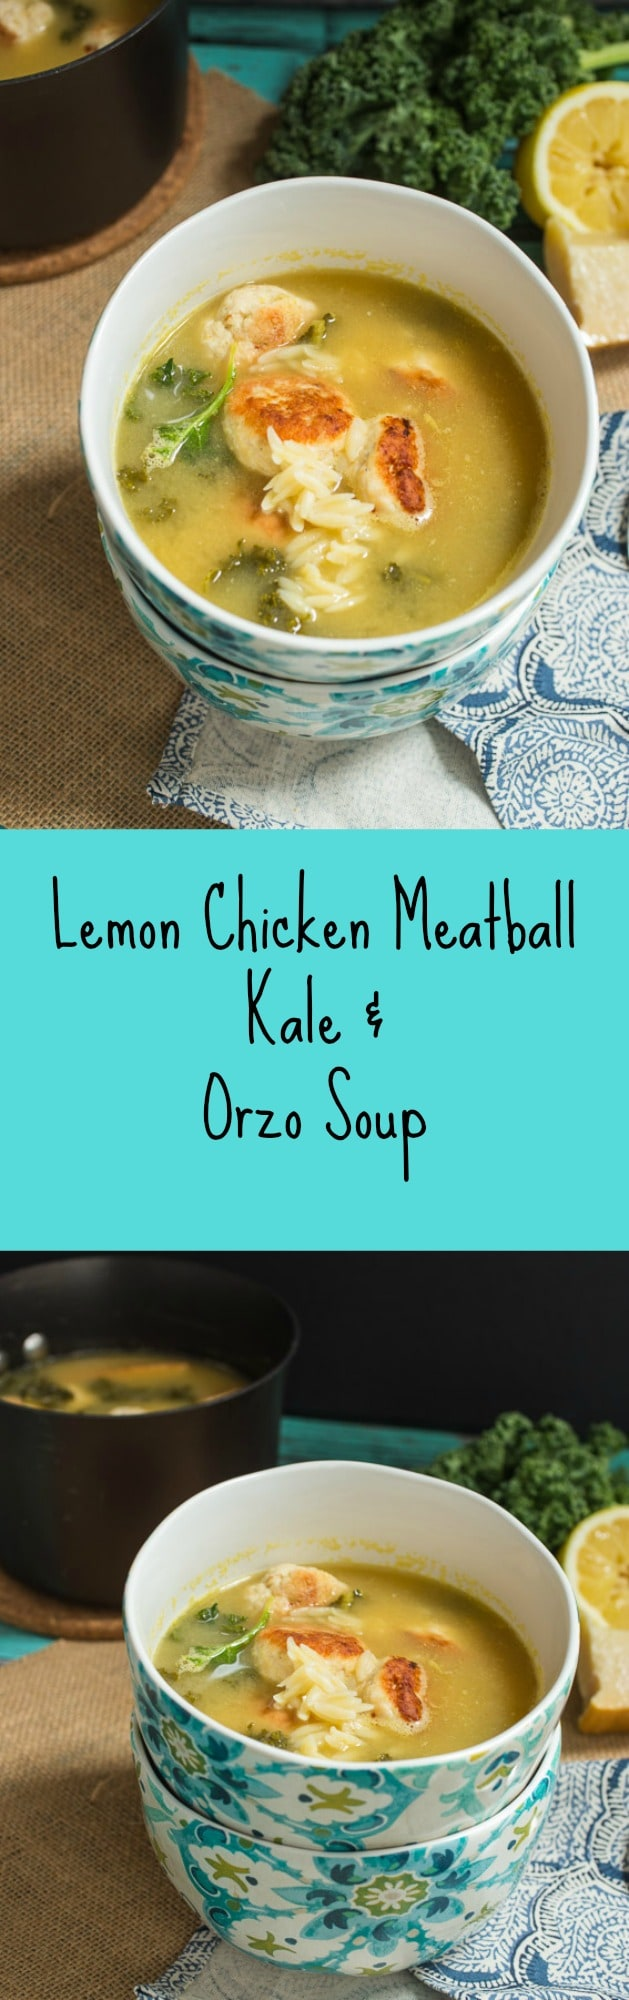 Lemon Chicken Meatball, Kale and Orzo Soup | girlinthelittleredkitchen.com